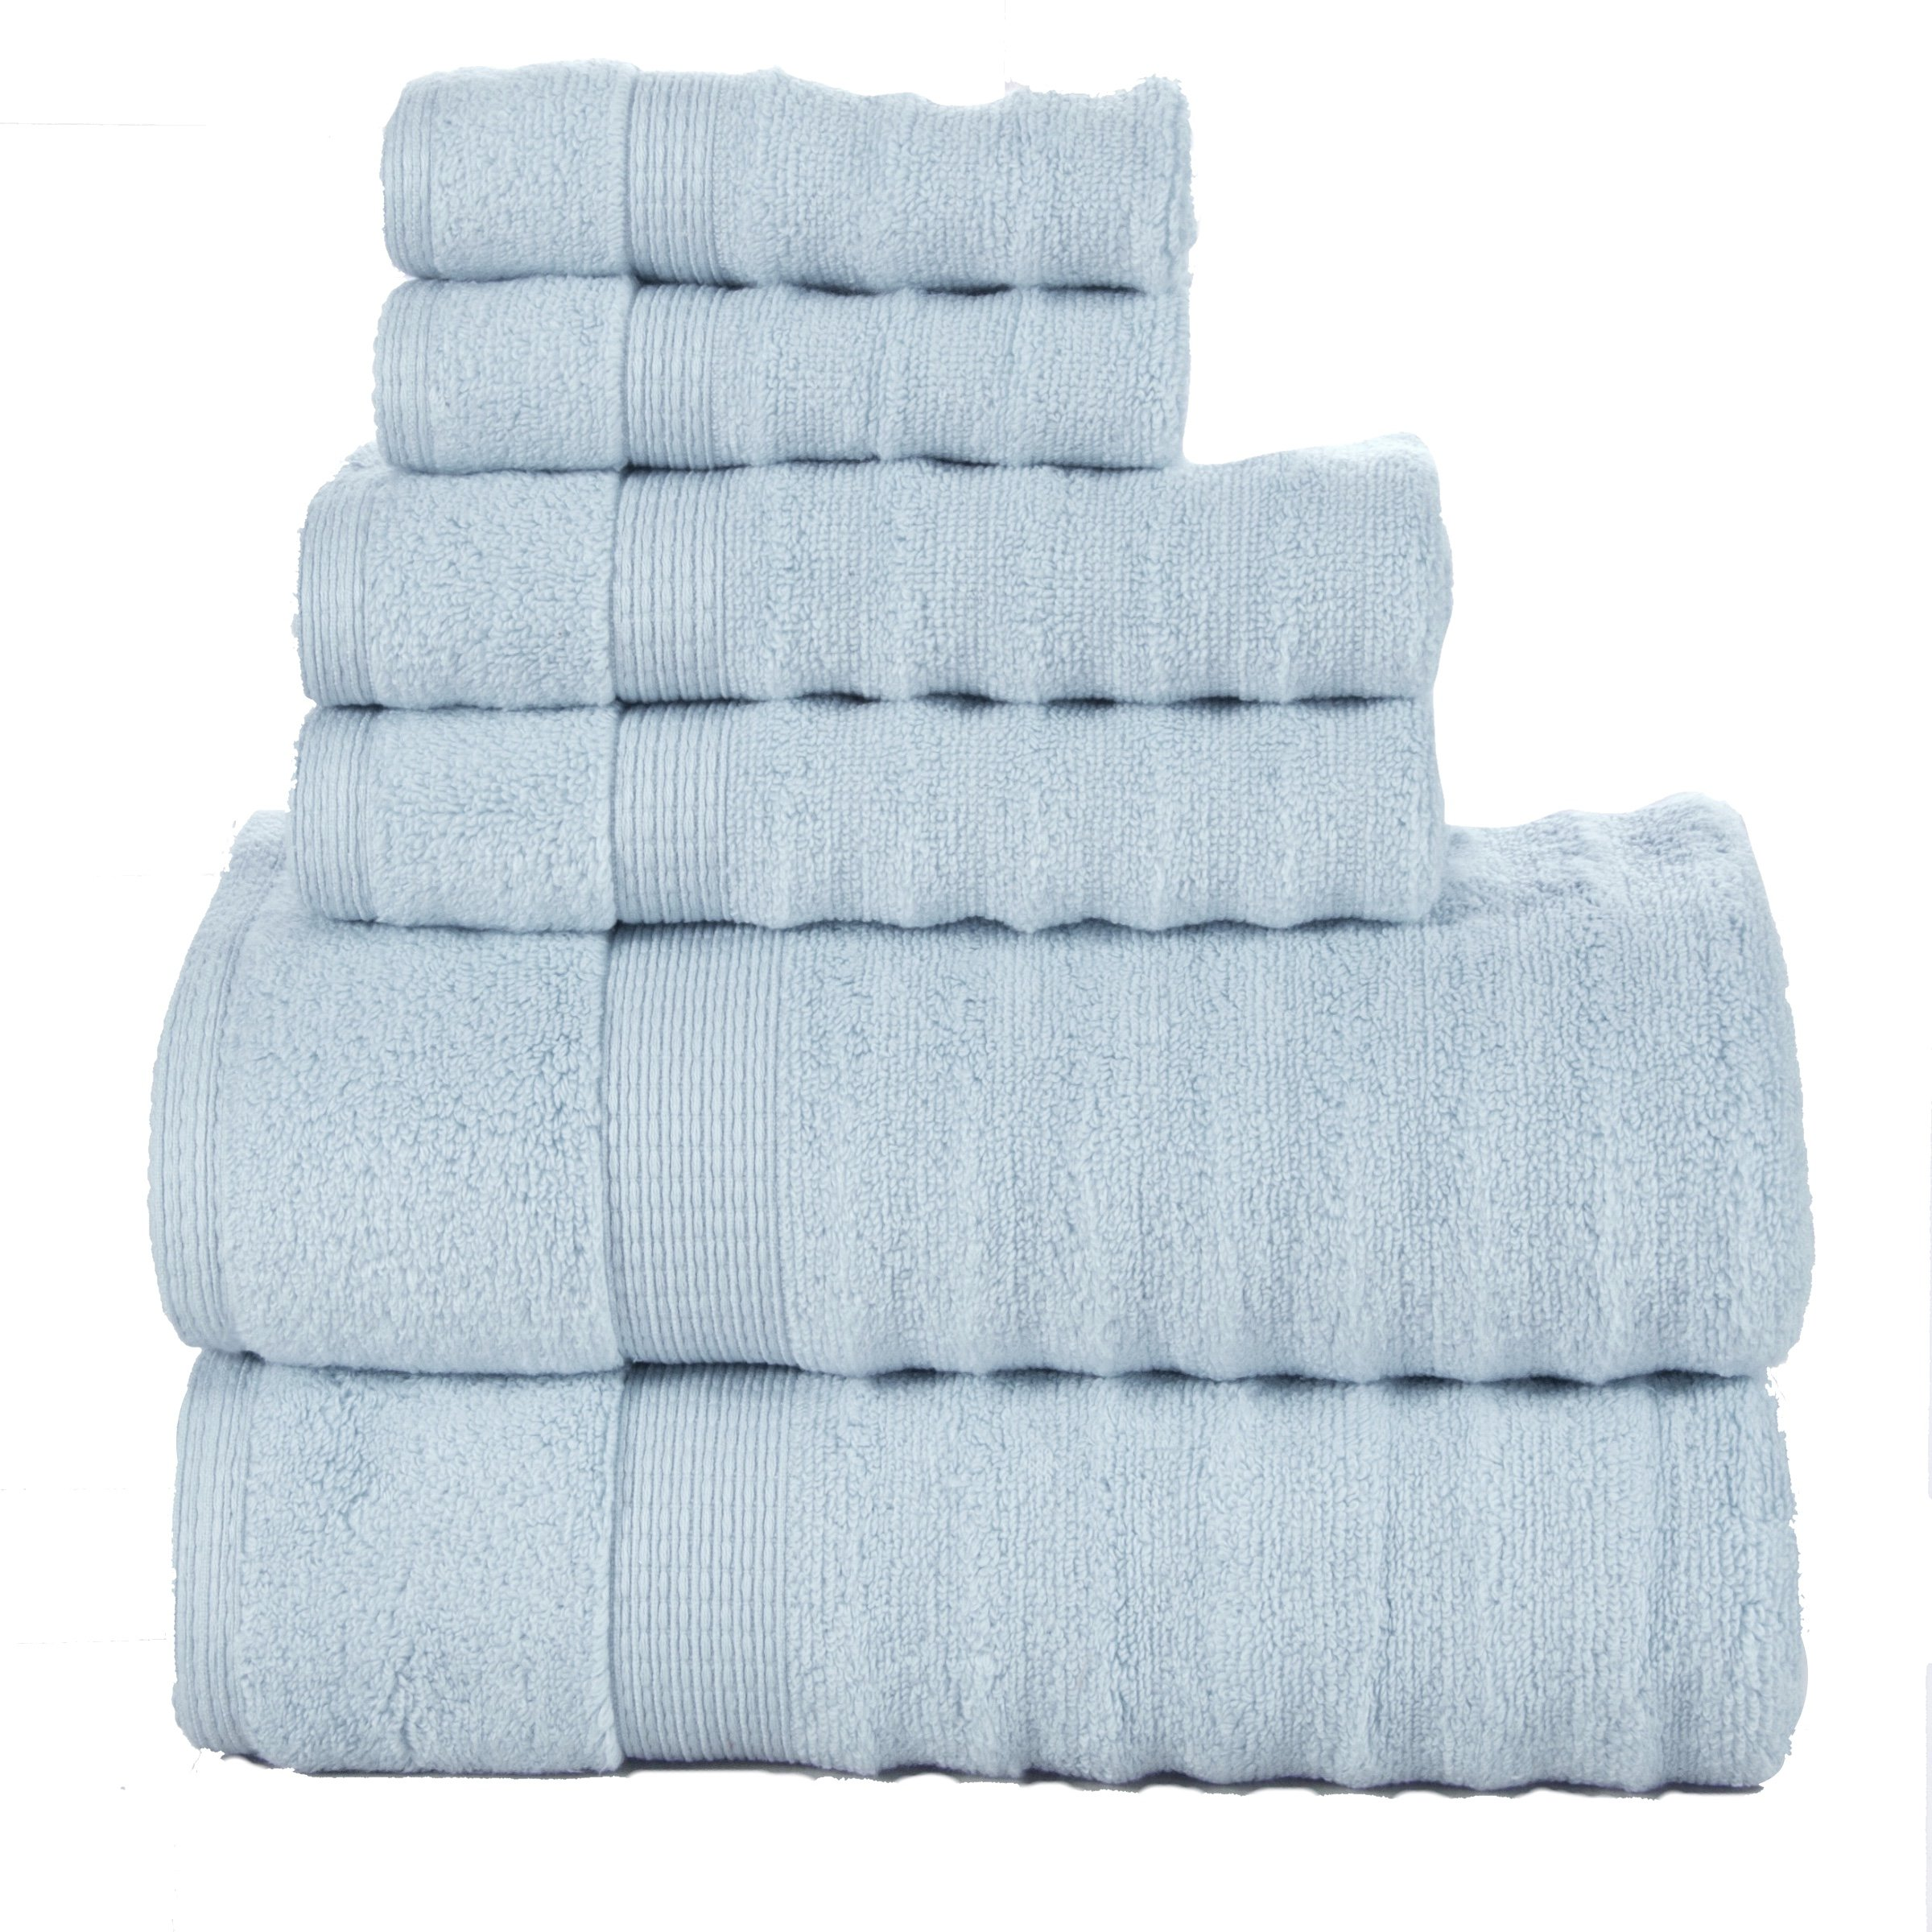 Affinity Home Collection 6 Piece Quick Dry Elegance Spa Zero Twist Cotton Ribbed Towel Set, Blue by Affinity Home Collection (Image #1)